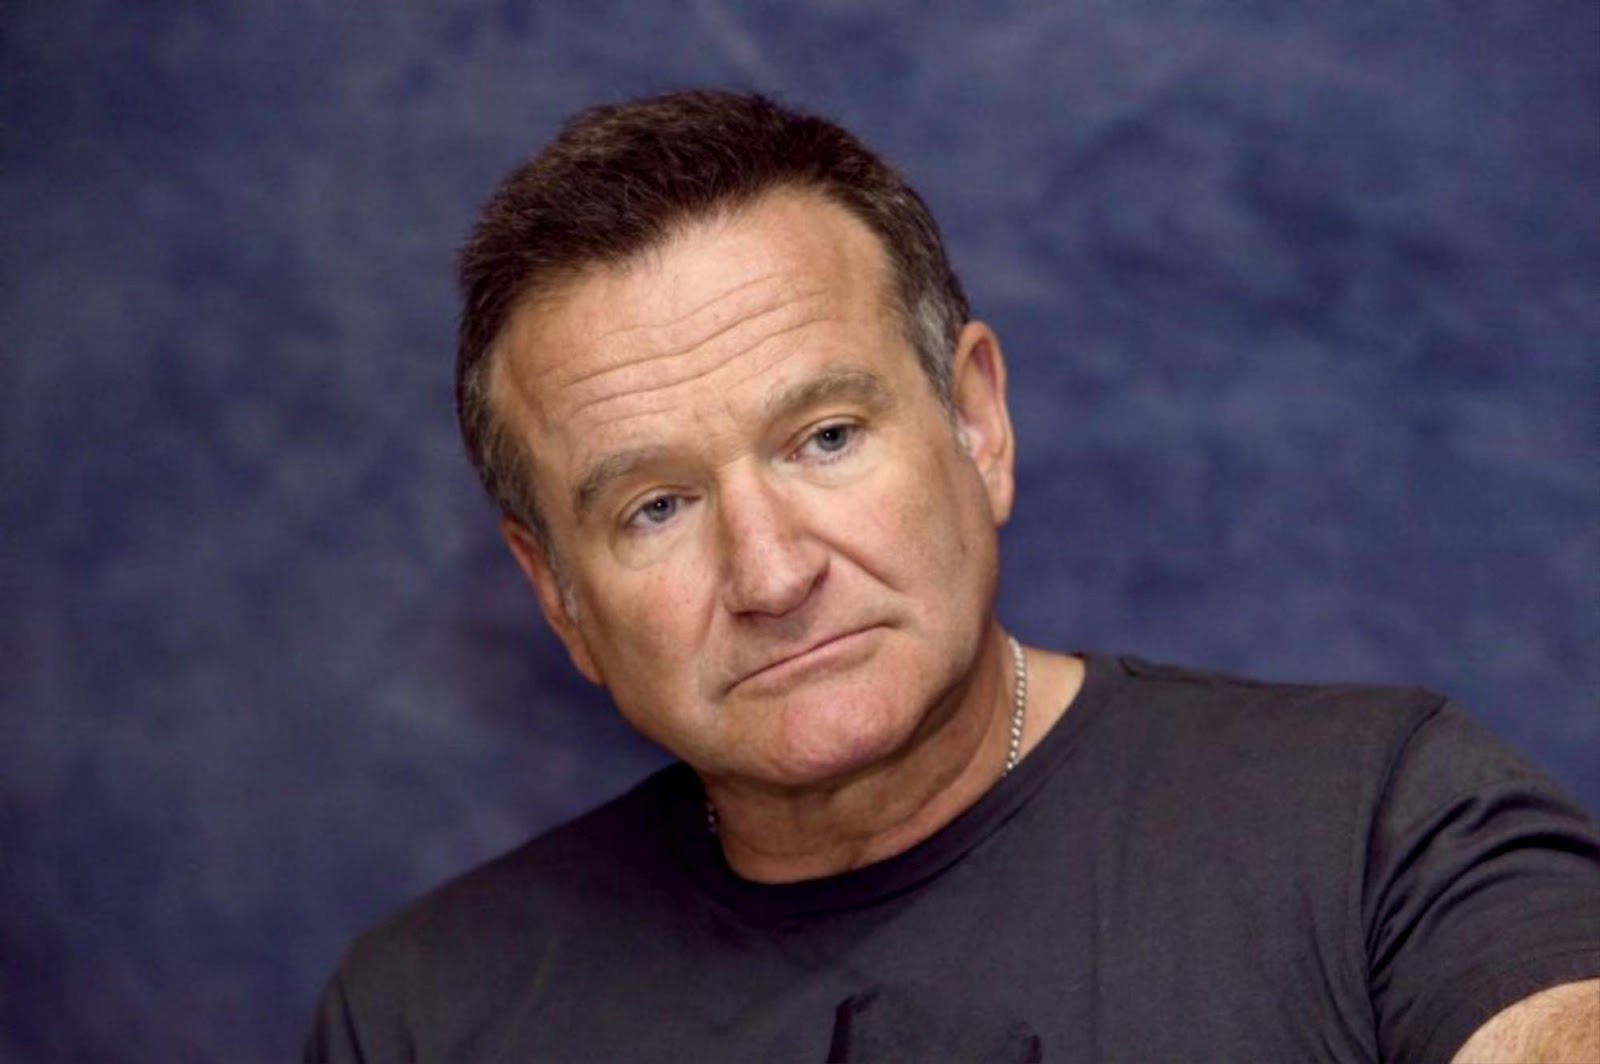 http://2.bp.blogspot.com/-3Vbqt7Kabys/T7fJWdbF_zI/AAAAAAAAWRo/dt8fHpl0qS0/s1600/Robin-Williams-robin-williams-23183012-2000-1330.jpg